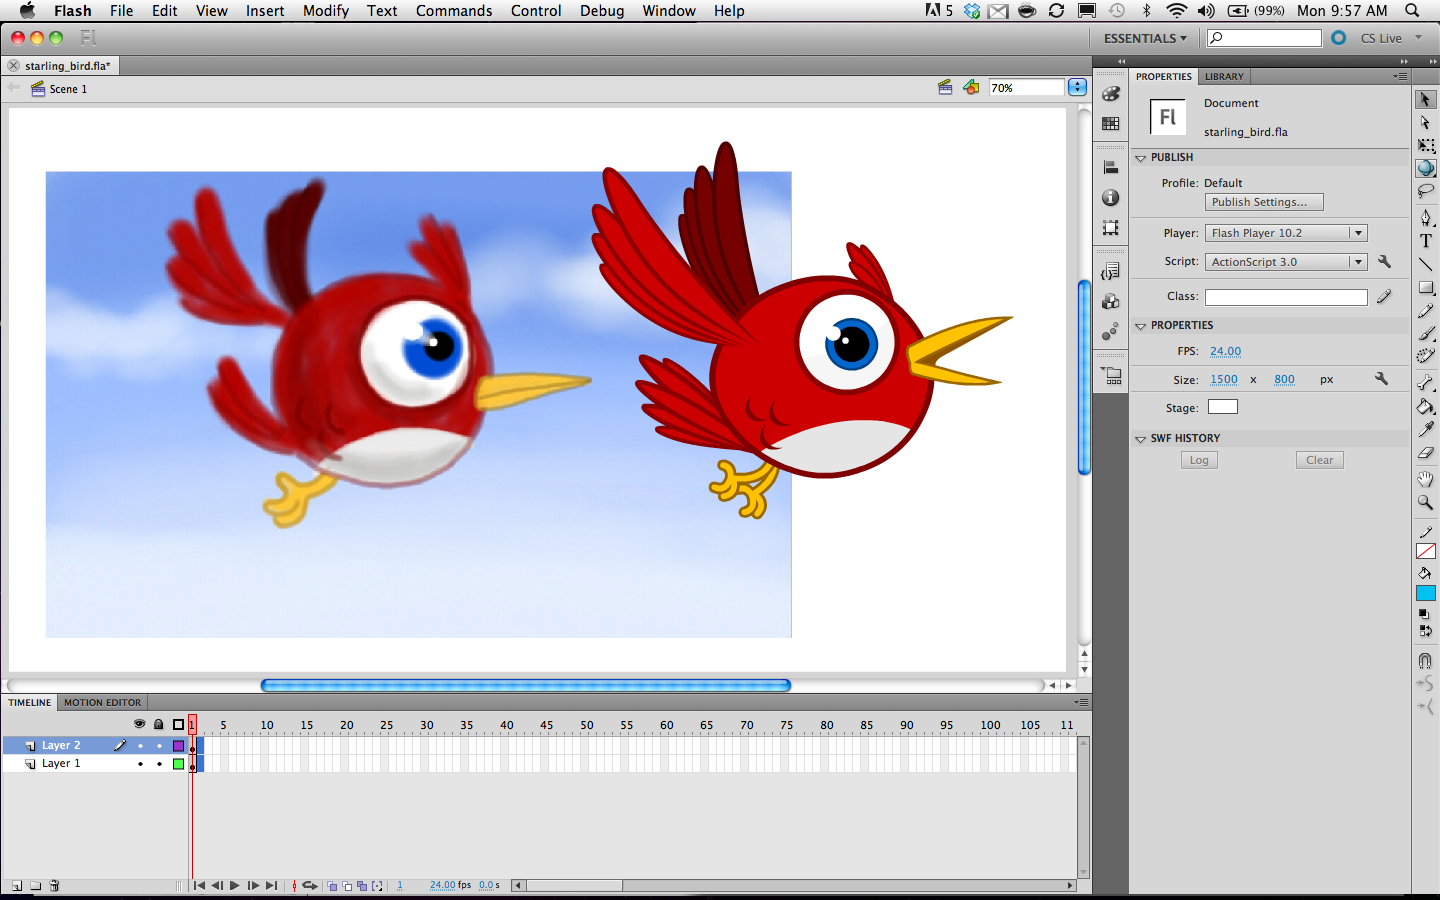 Web animation with Macromedia Flash in the 1990s.